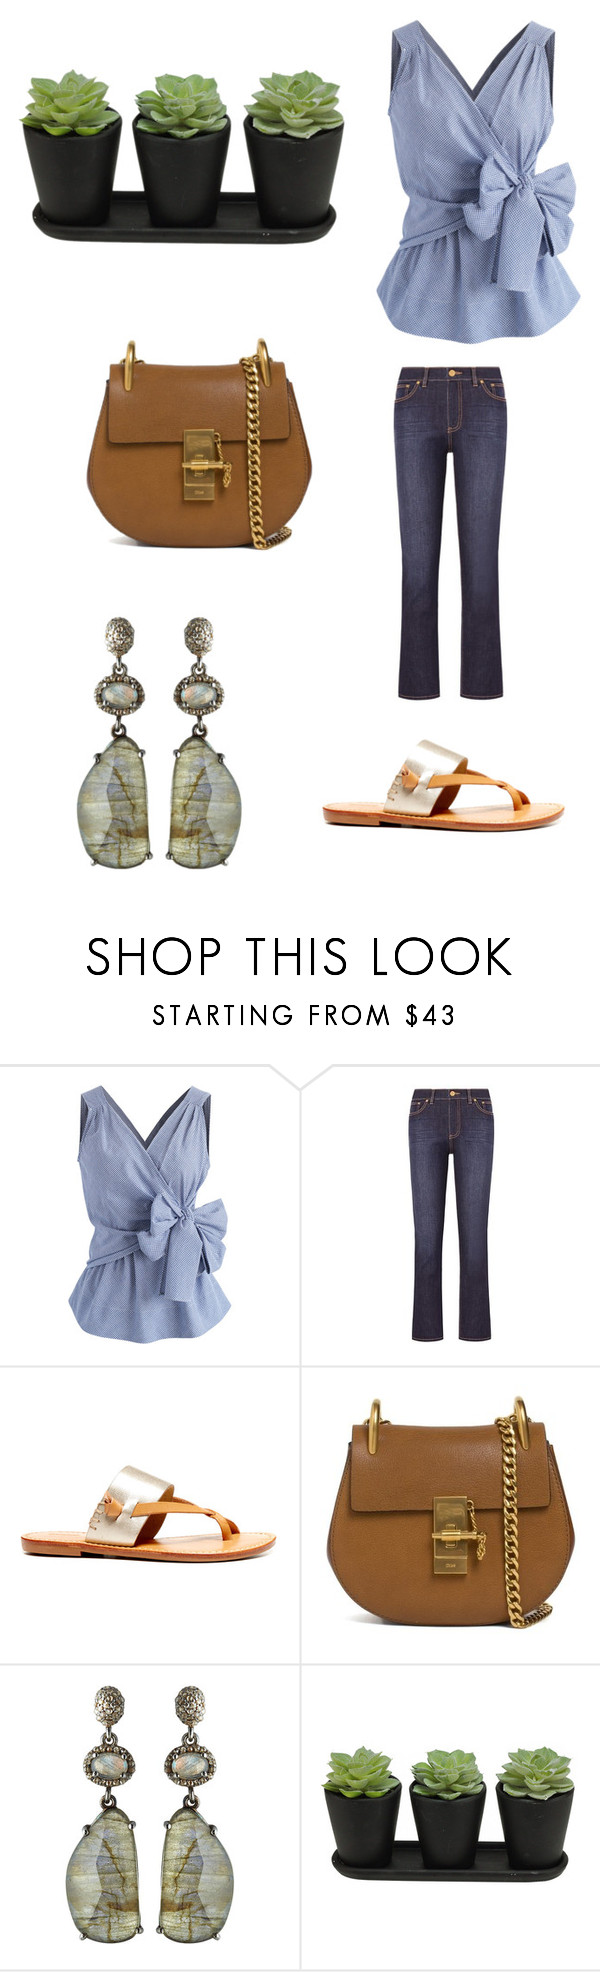 """Set 2...March 8th."" by liz957 ❤ liked on Polyvore featuring Chicwish, Tory Burch, Havaianas, Chloé and Bavna"